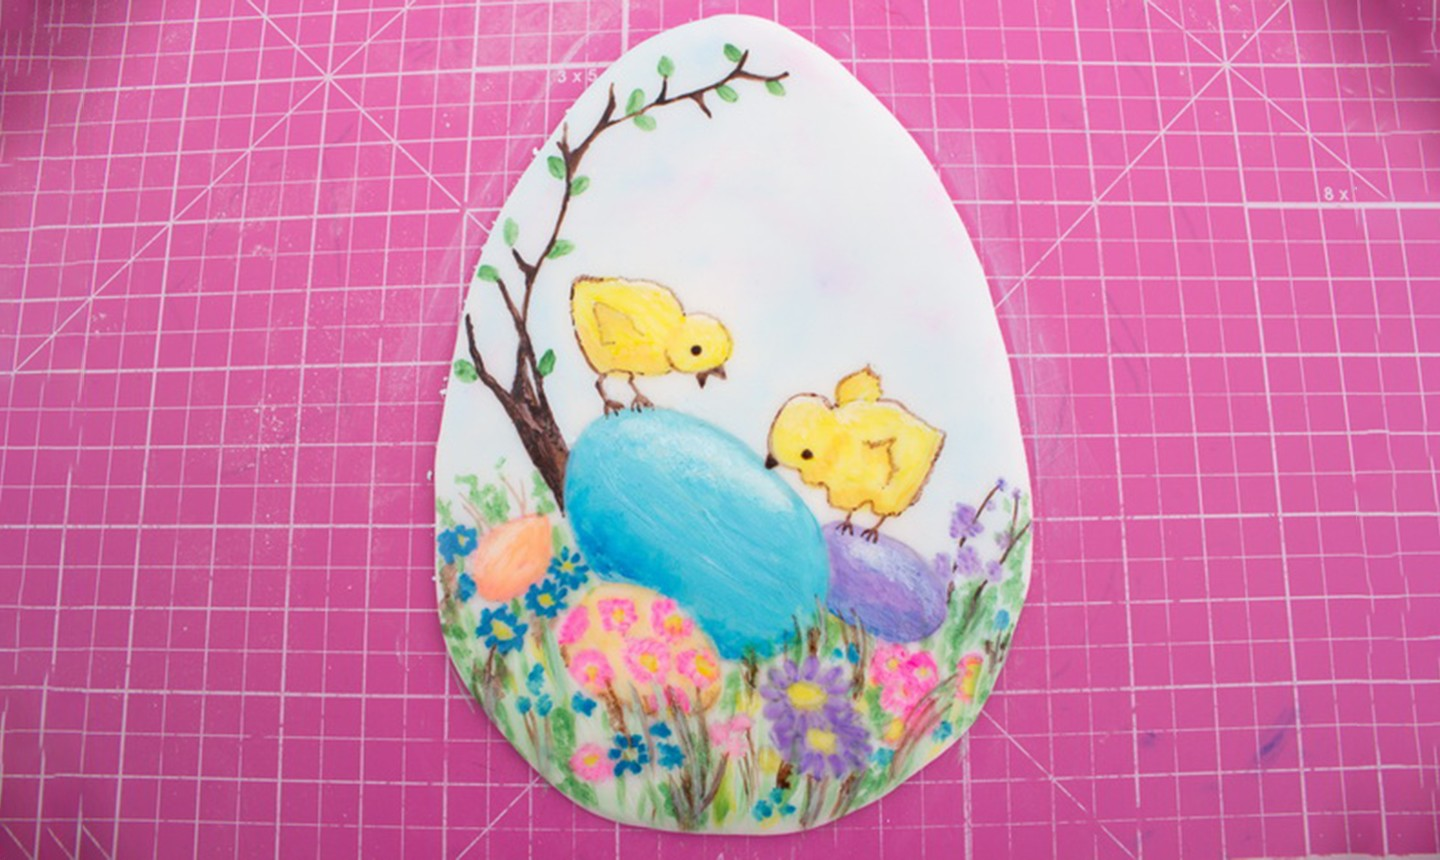 painted dust easter image